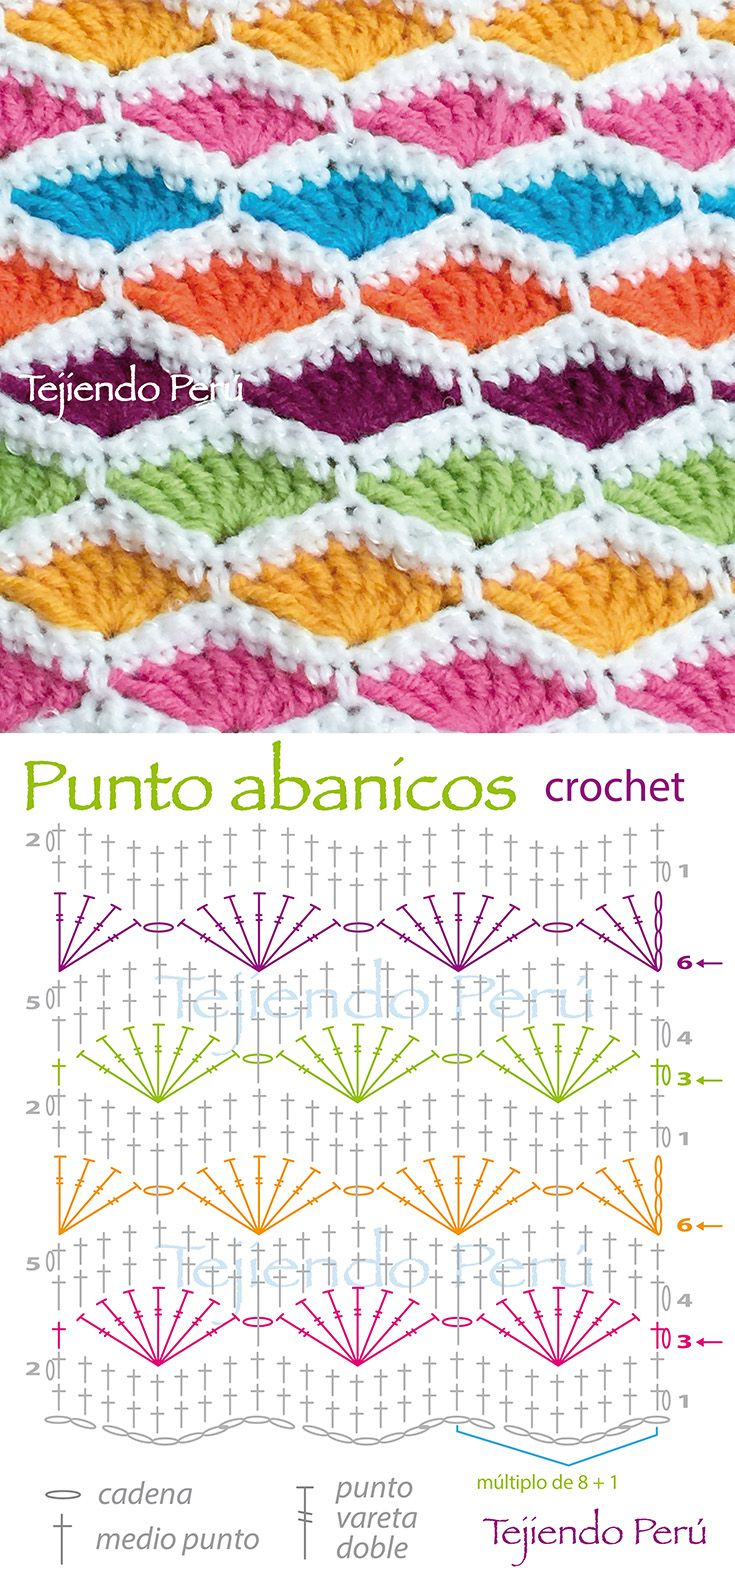 189 best Puntos fantasía en crochet - Crochet stitches images on ...